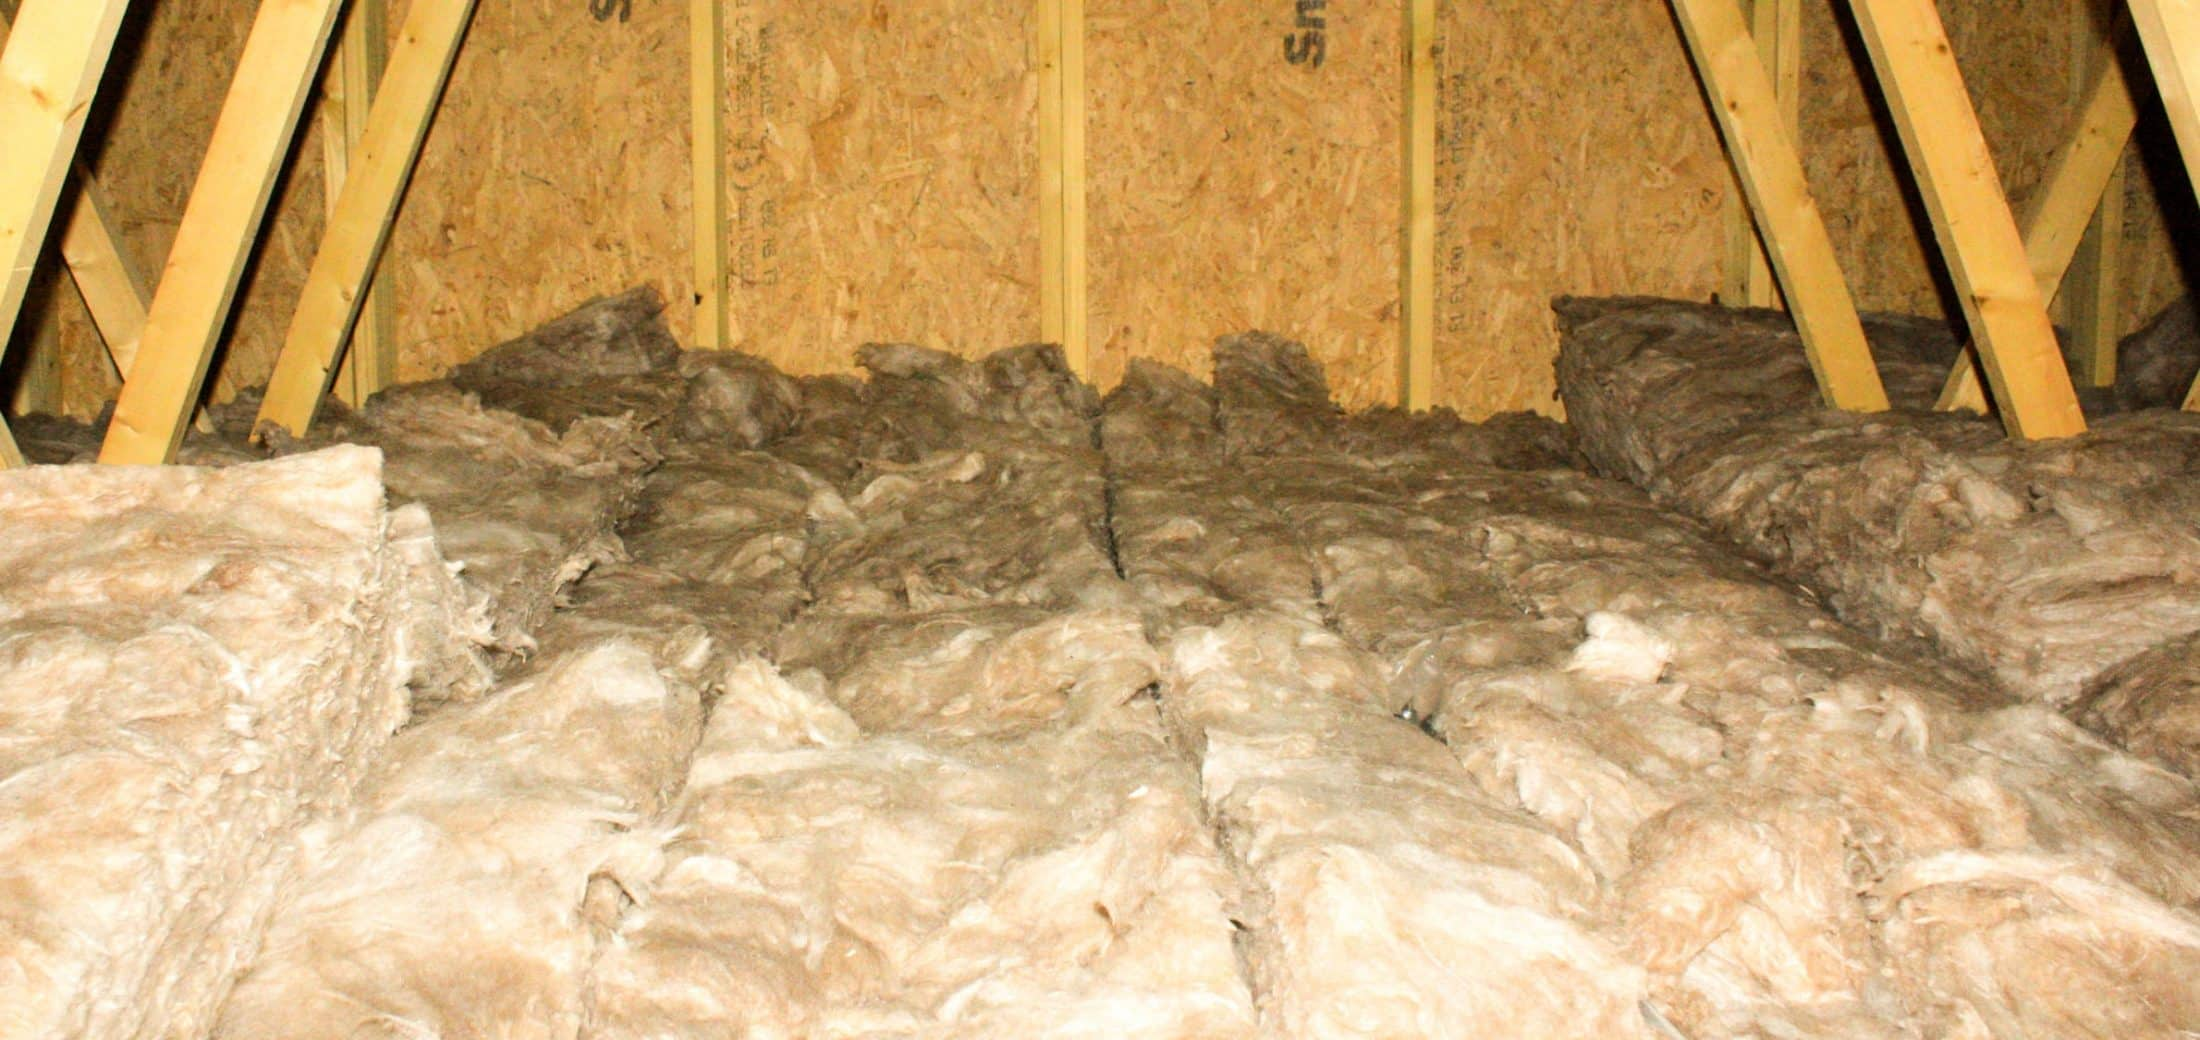 View of attic and asbestos insulation